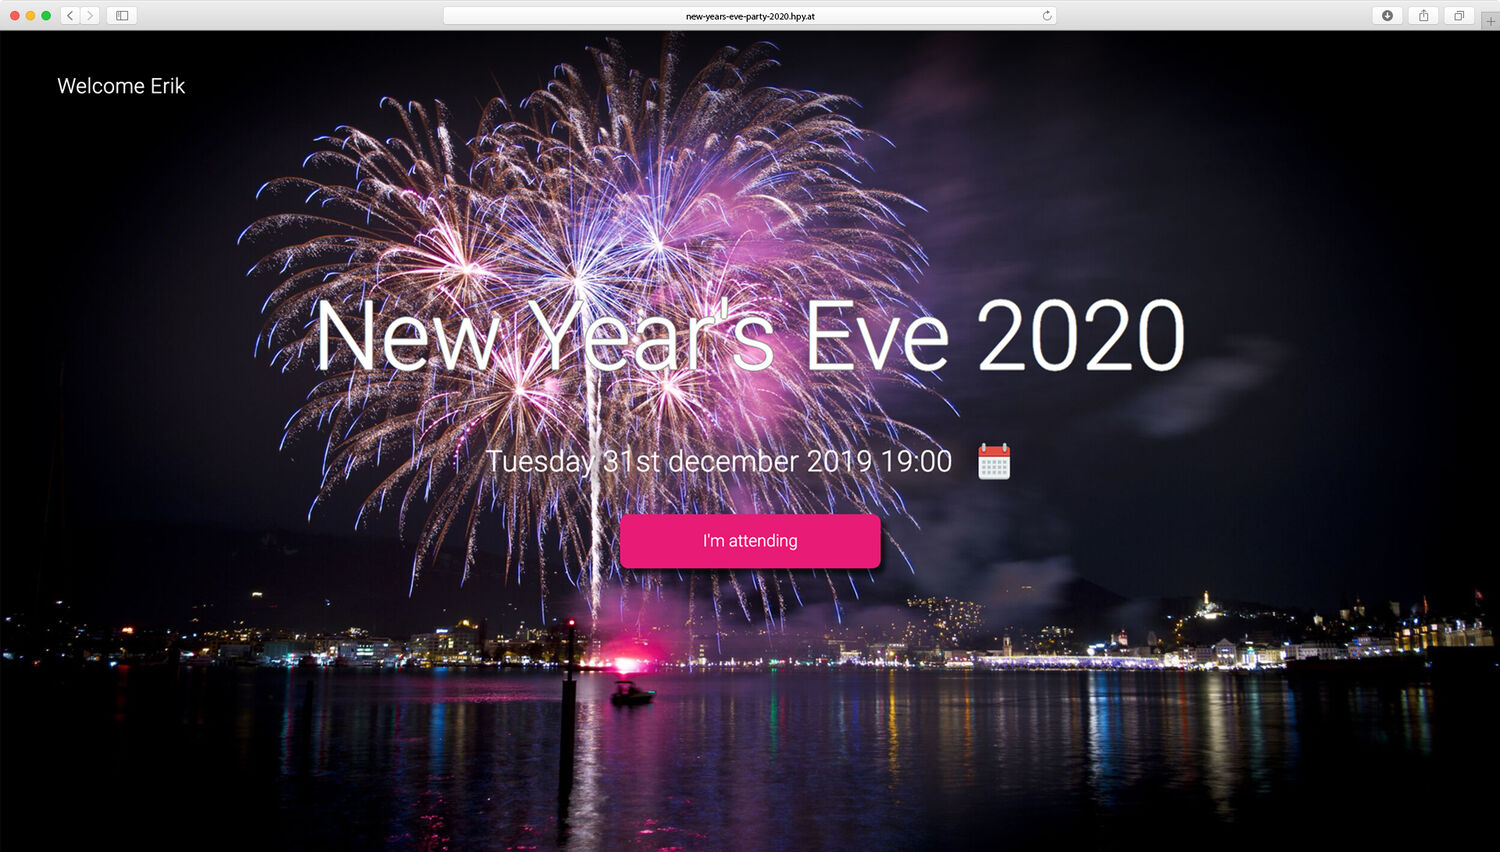 Organize new years eve party